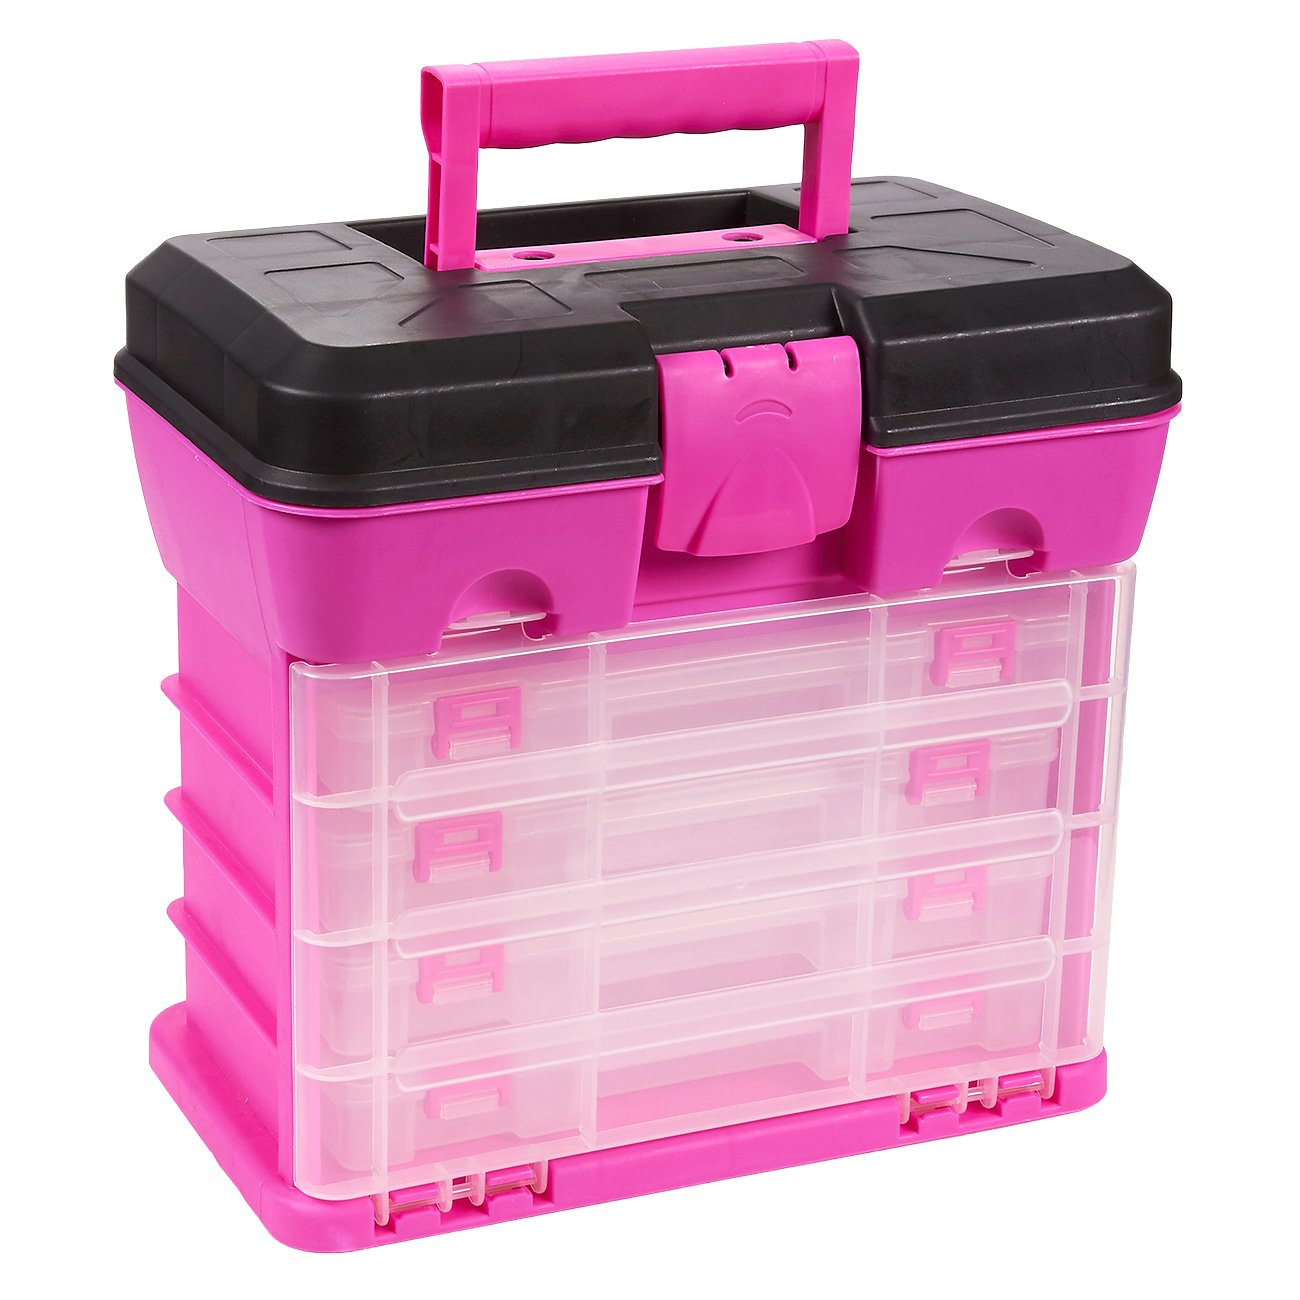 Juvale Tool Box - Organizer Box - Includes 4 13-Compartment Slideout Containers - Perfect Storing Tackle, Craft Accessories, Nuts Bolts, Pink, 10.5 x 10.2 x 6.2 inches